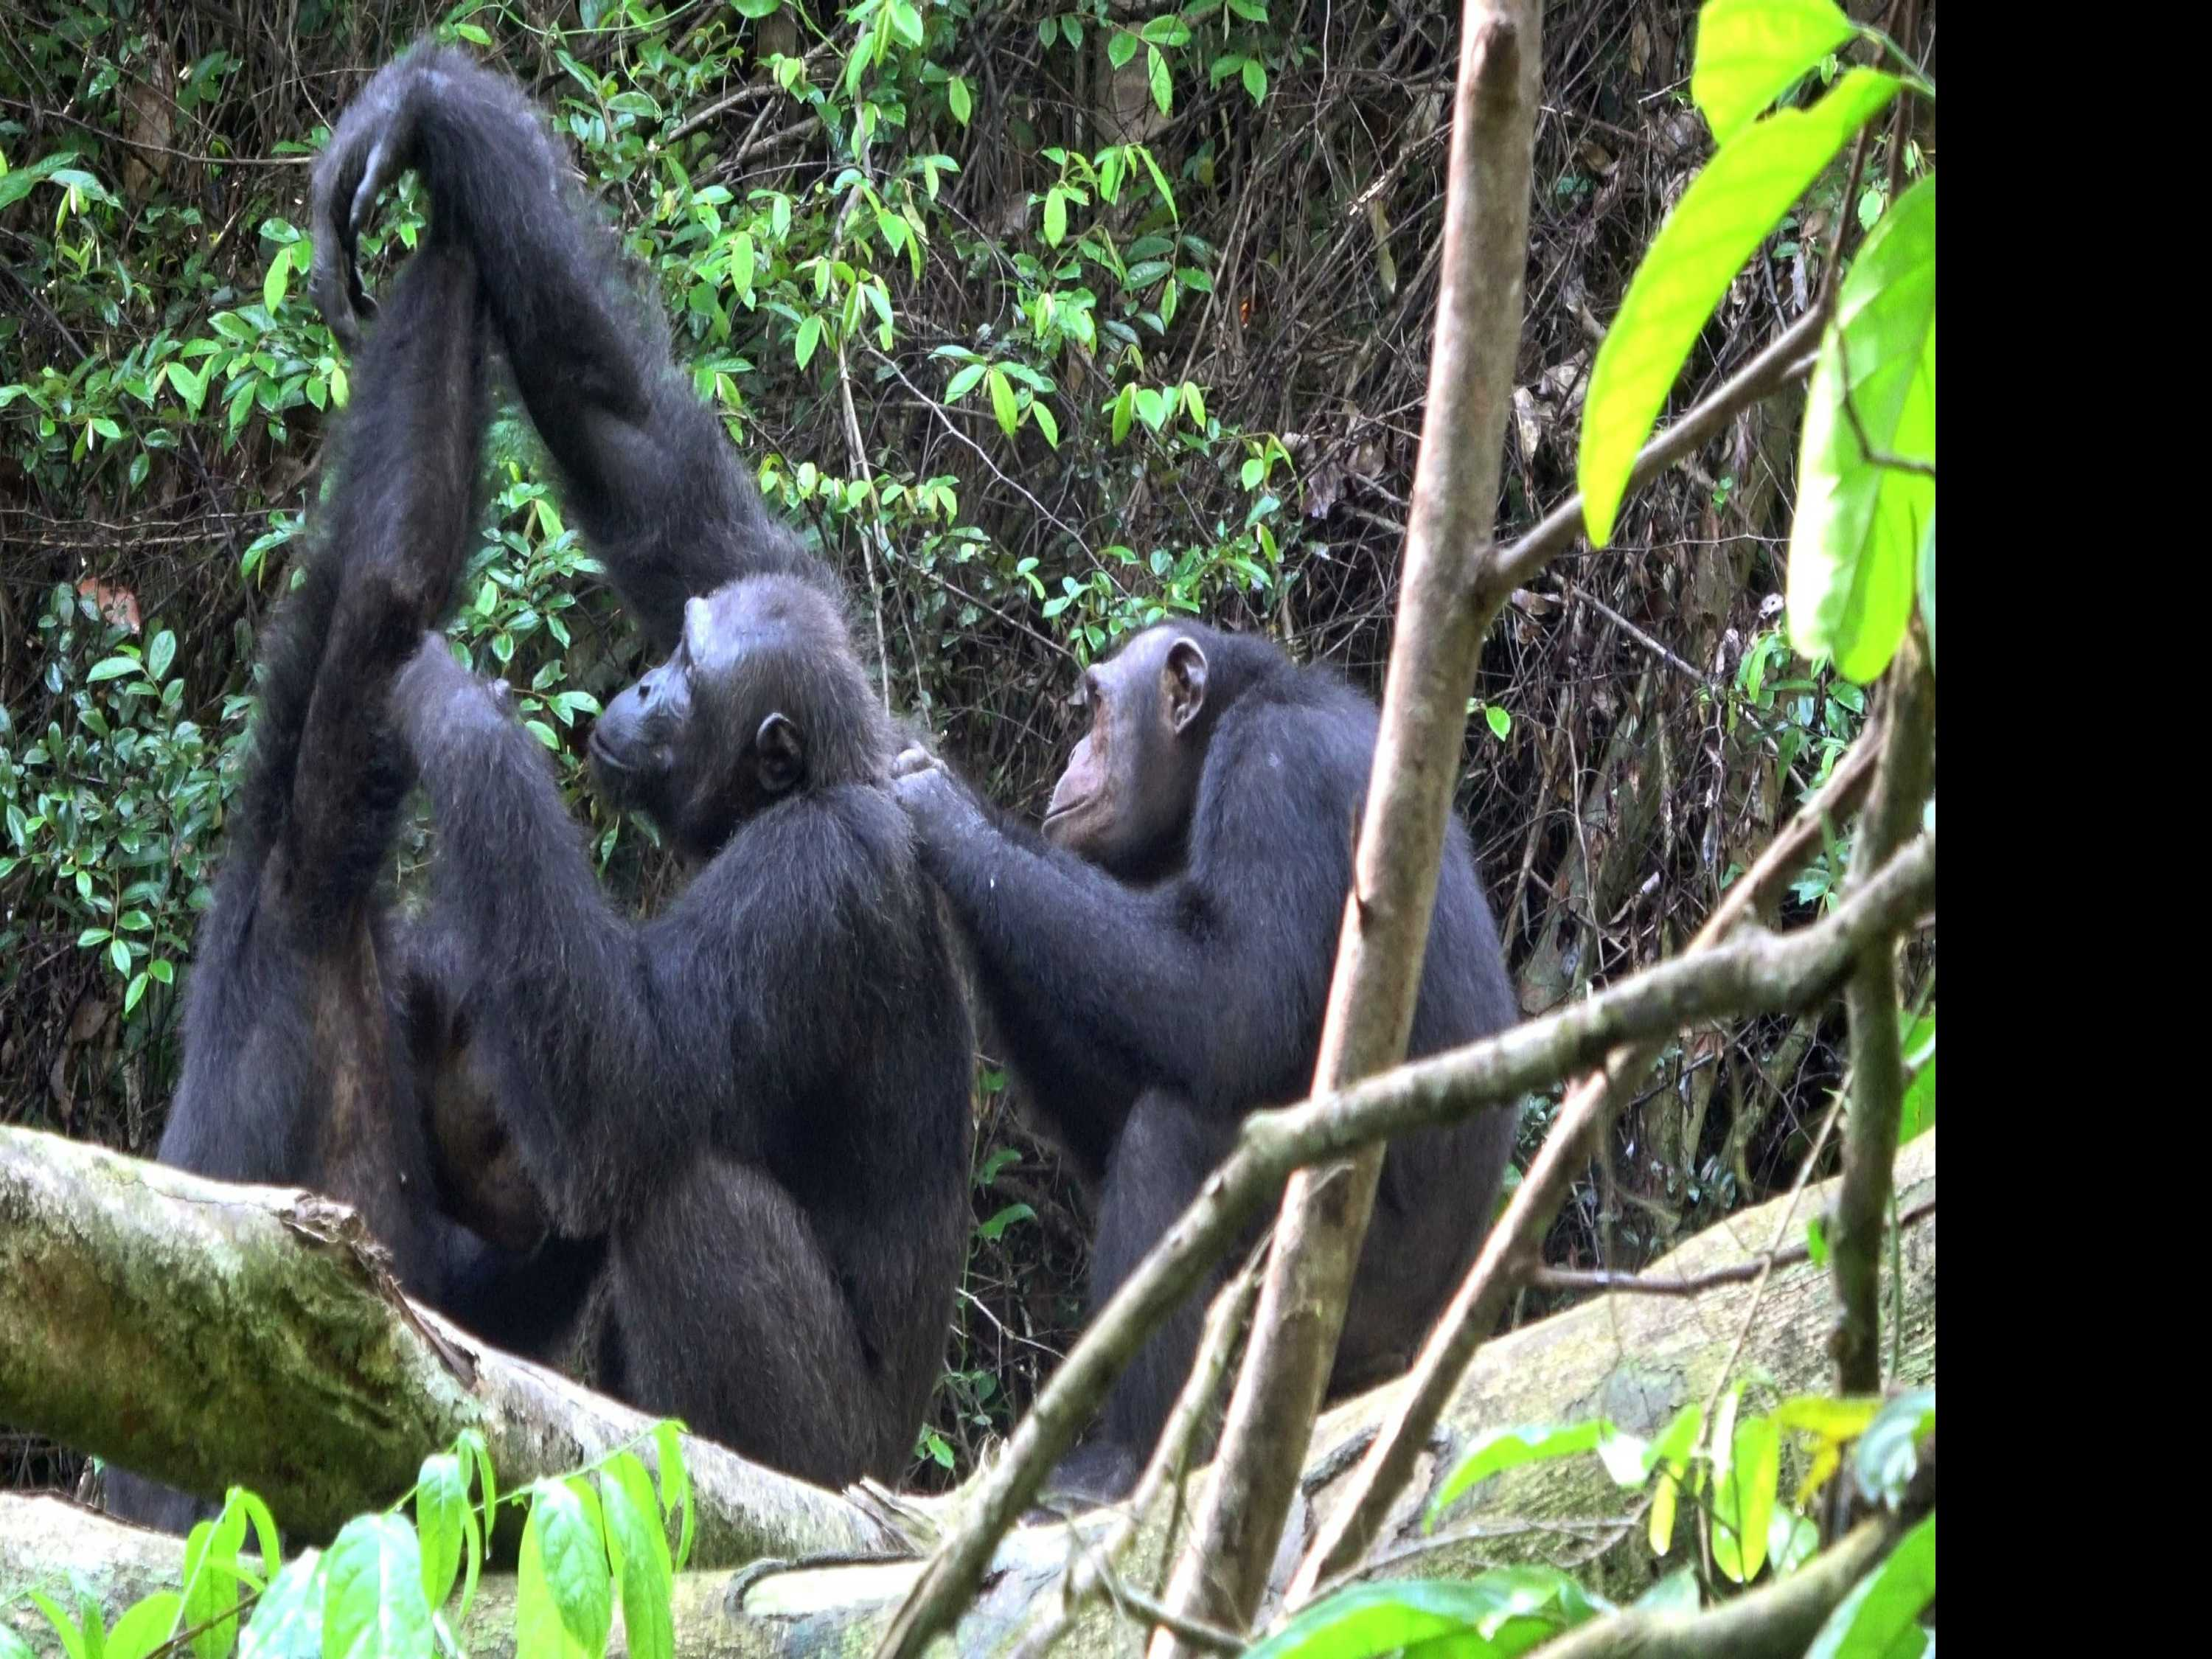 Chimps Varied 'Culture' Matters for Conservation, Study Says